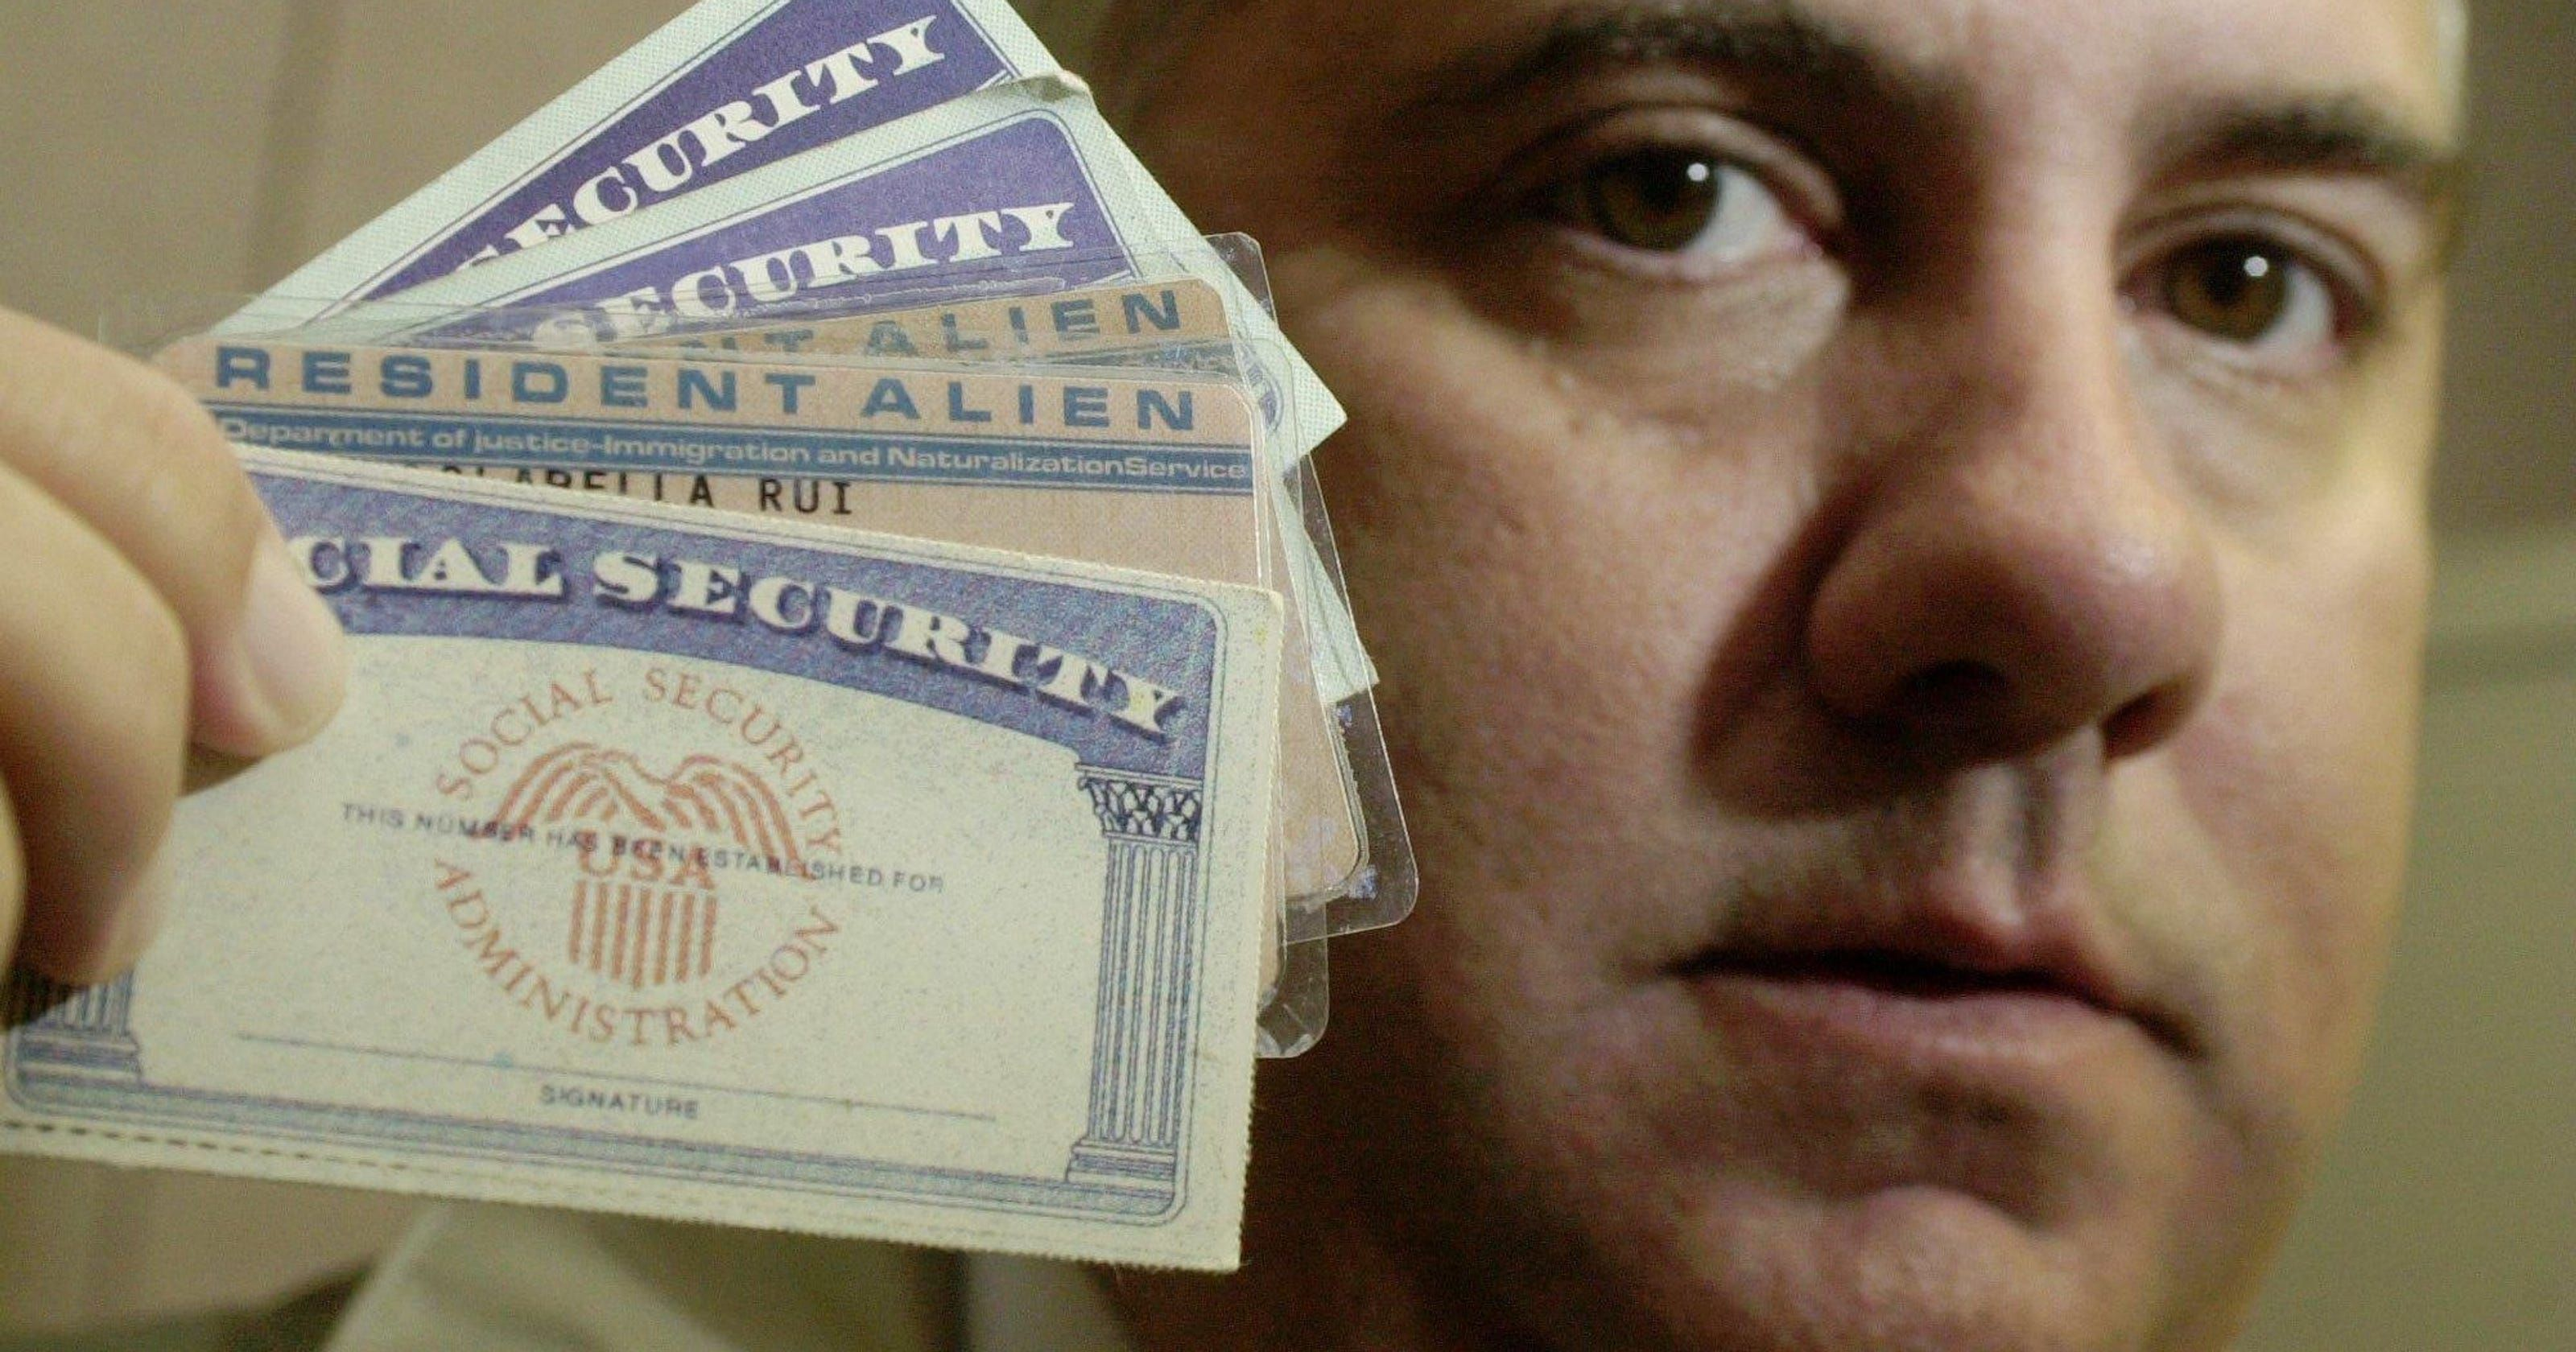 Get social security card replacement online with erecords